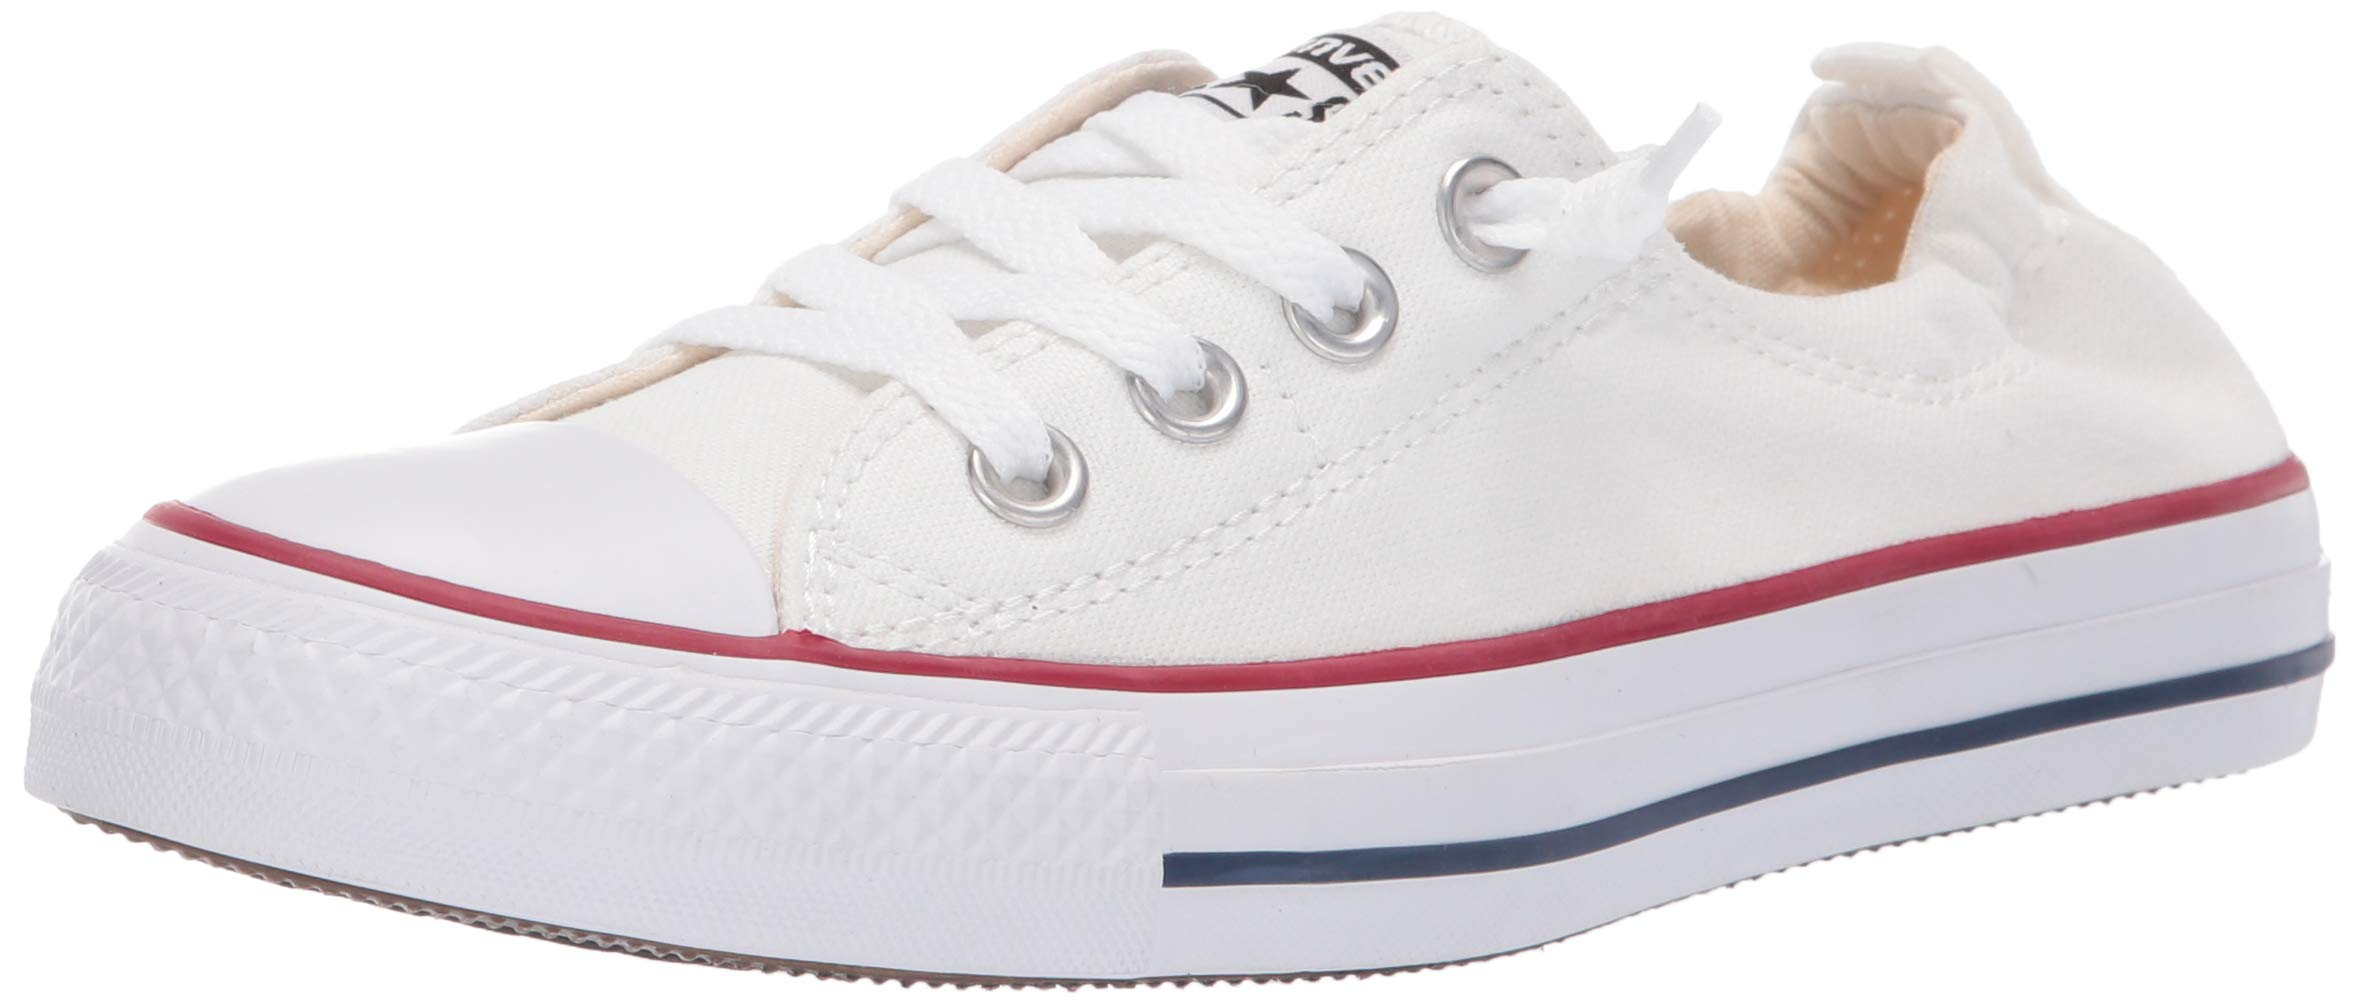 b8e687490efb Converse Chuck Taylor All Star Shoreline White Lace-Up Sneaker - 9.5 ...